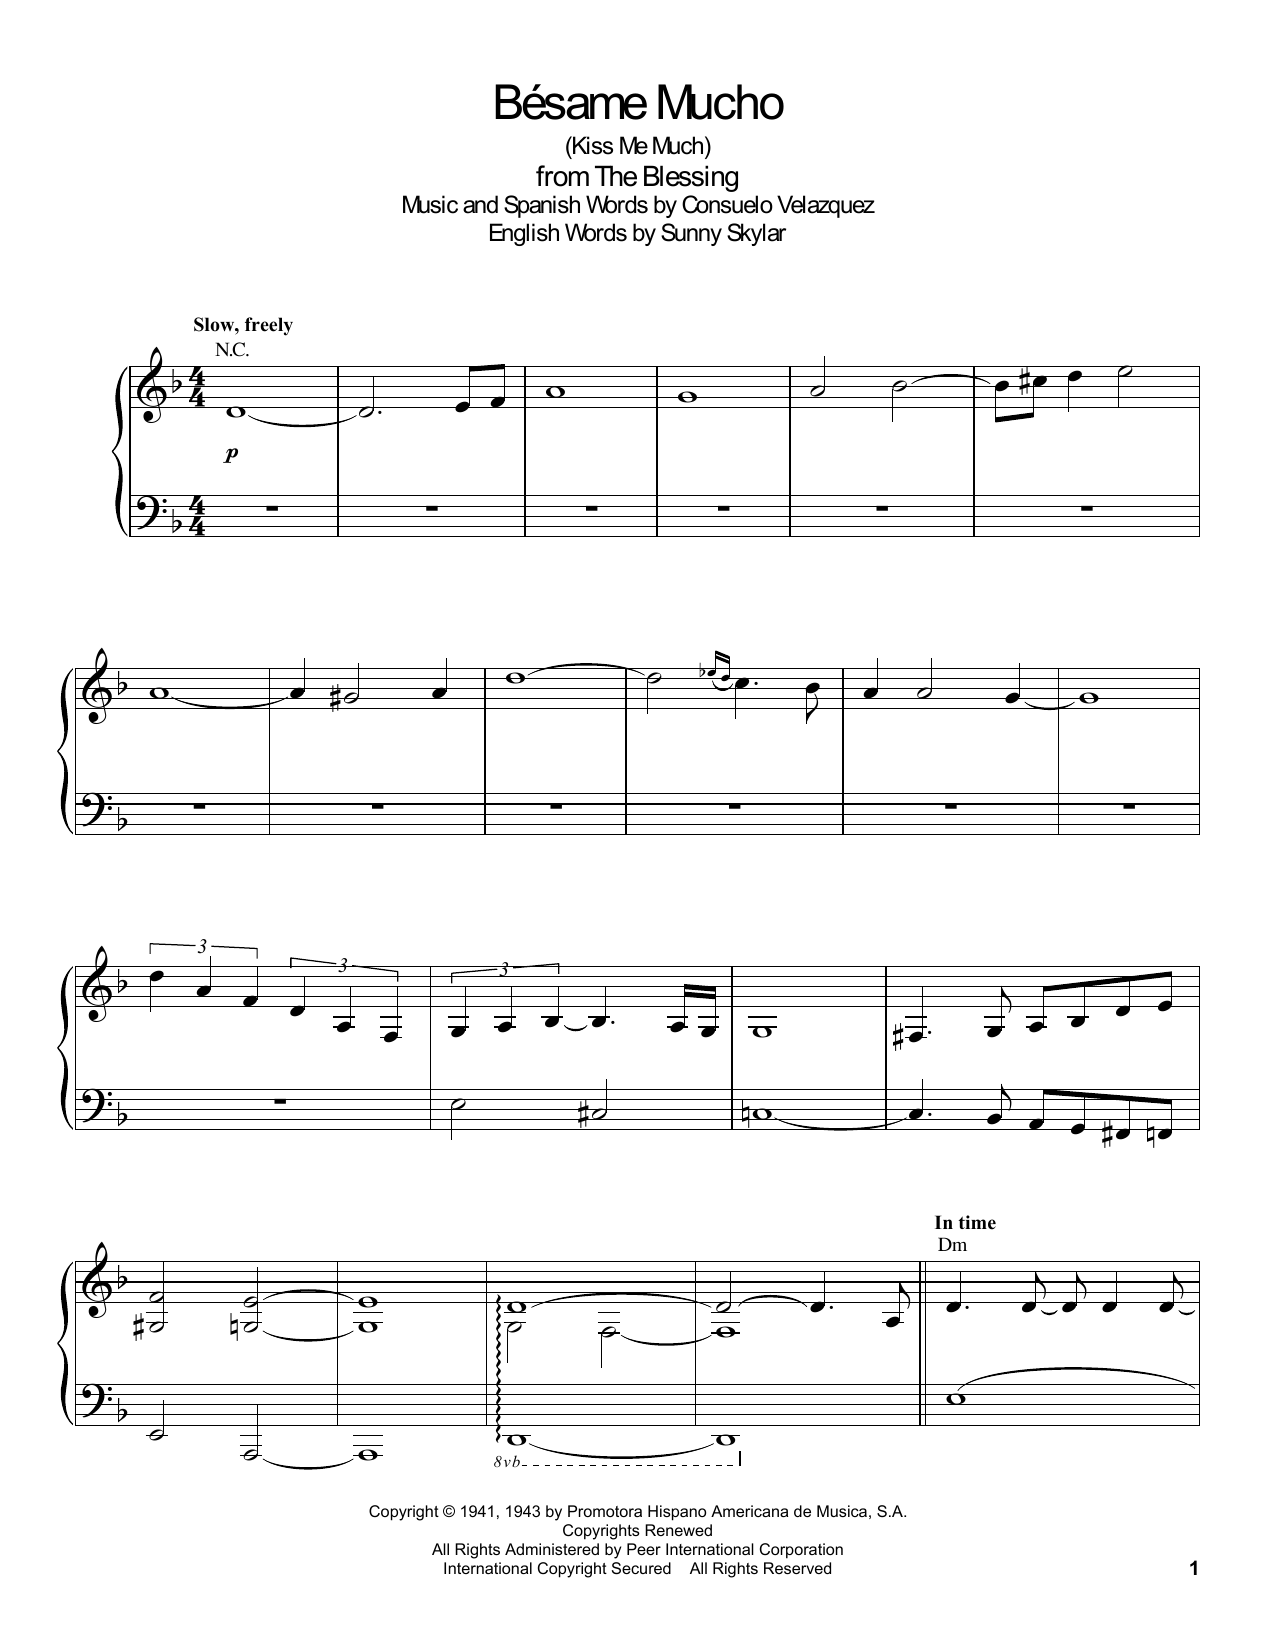 Bésame Mucho (Kiss Me Much) Sheet Music